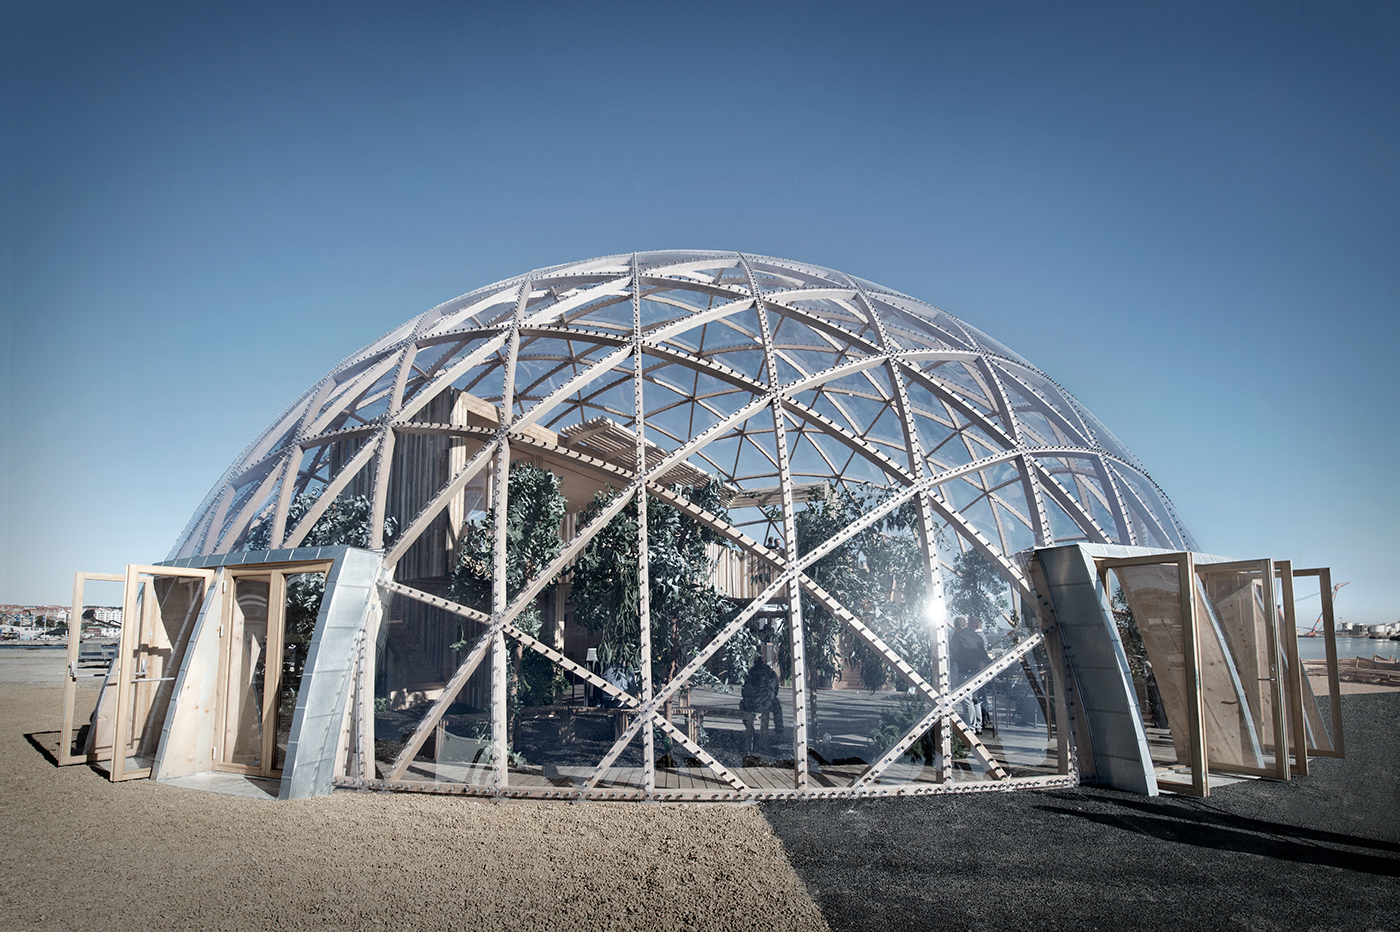 And look further into the dome at